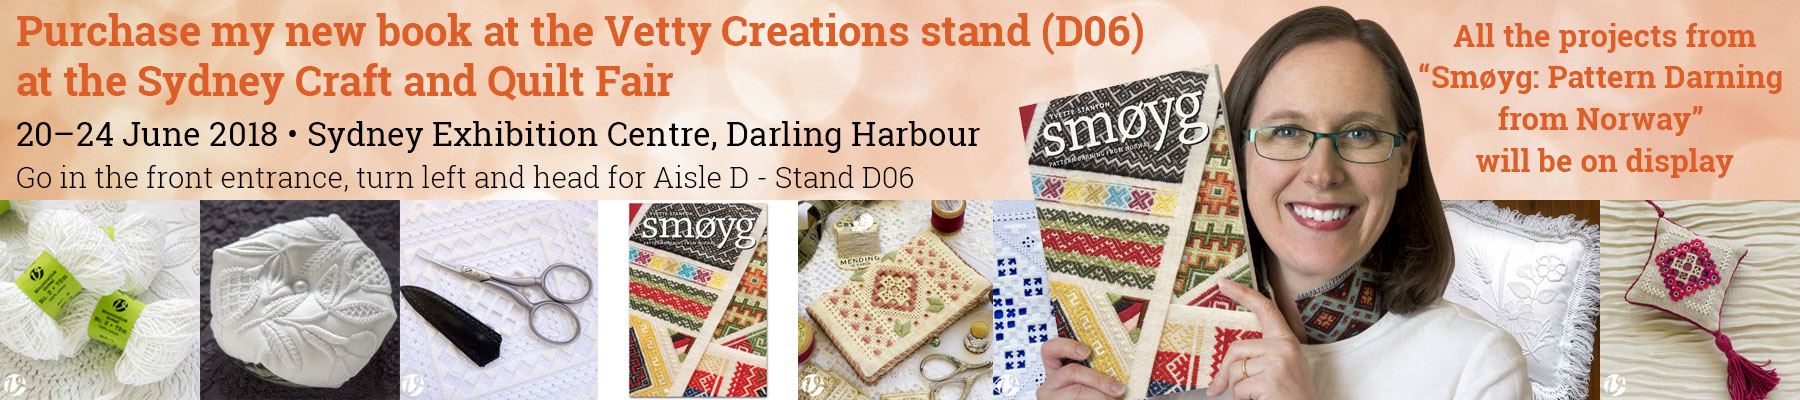 Vetty Creations will be at the Sydney Craft and Quilt Fair